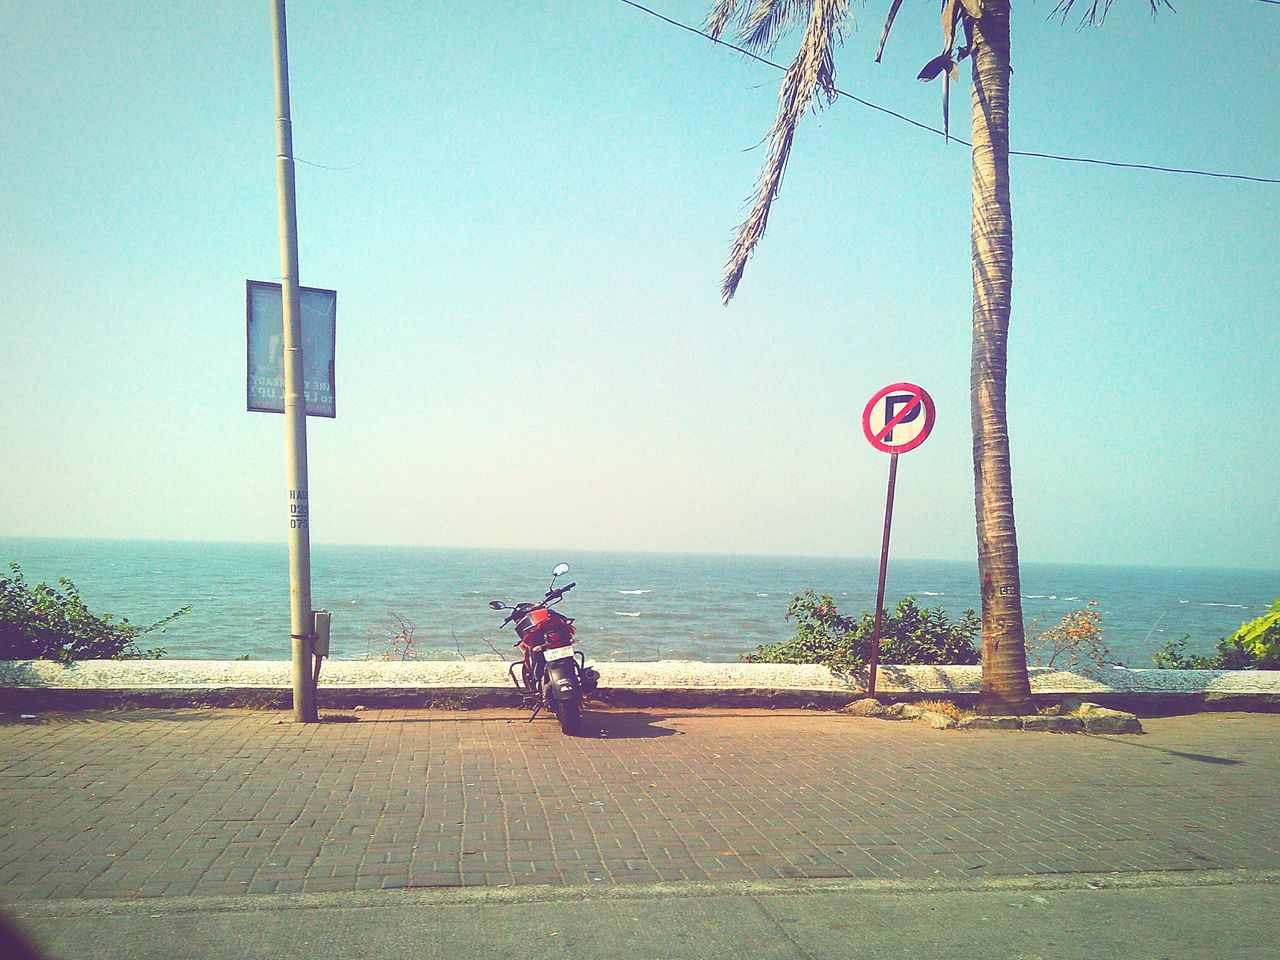 transportation, sea, bicycle, water, day, mode of transport, outdoors, land vehicle, sky, nature, road, one person, horizon over water, road sign, clear sky, real people, sitting, beauty in nature, tree, people